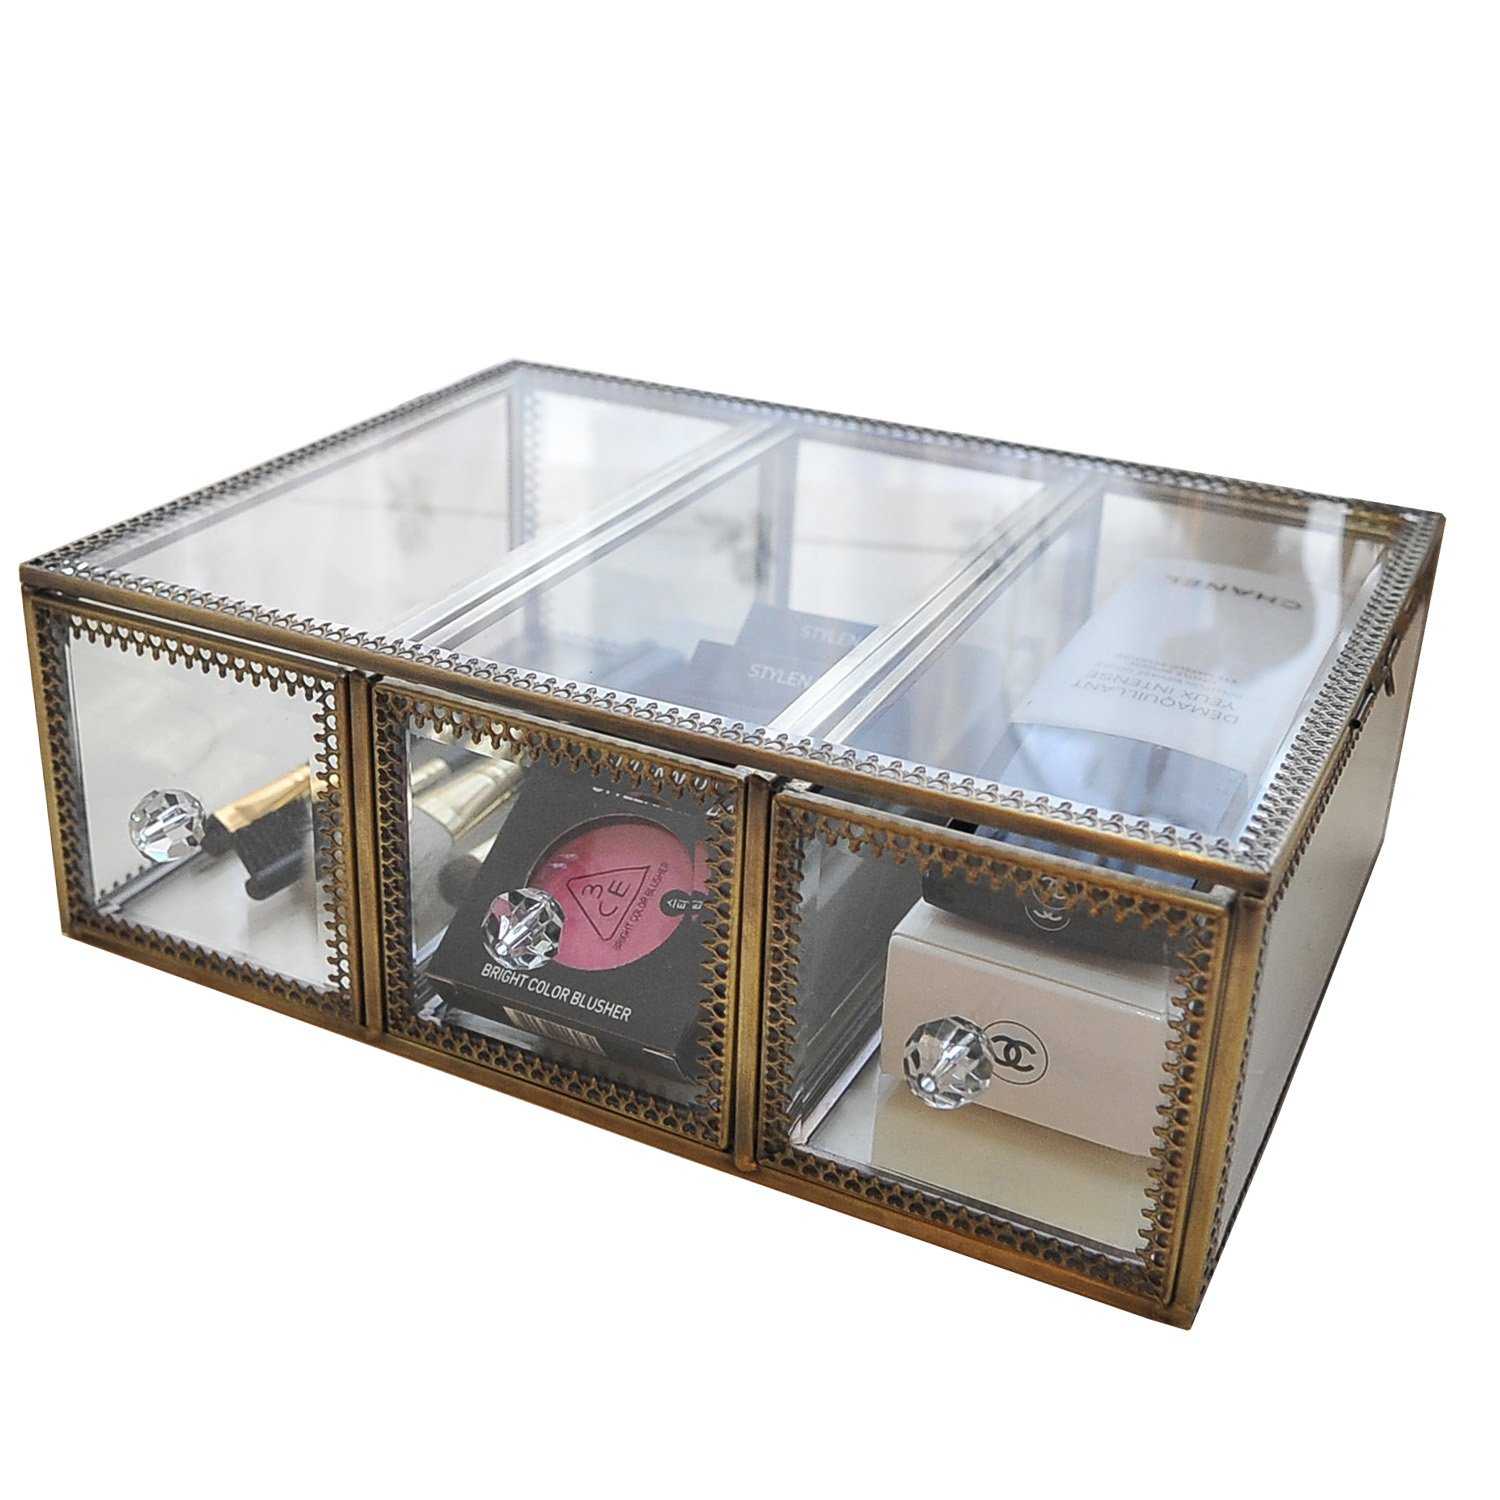 Home Décor Accents Display Clear Glass&Brass Metal Mirror Storage for Jewelry/Cosmetic/ Makeup/Organizer Drawers with Lid Non-Acrylic Individual Use Stackable Case DesignD